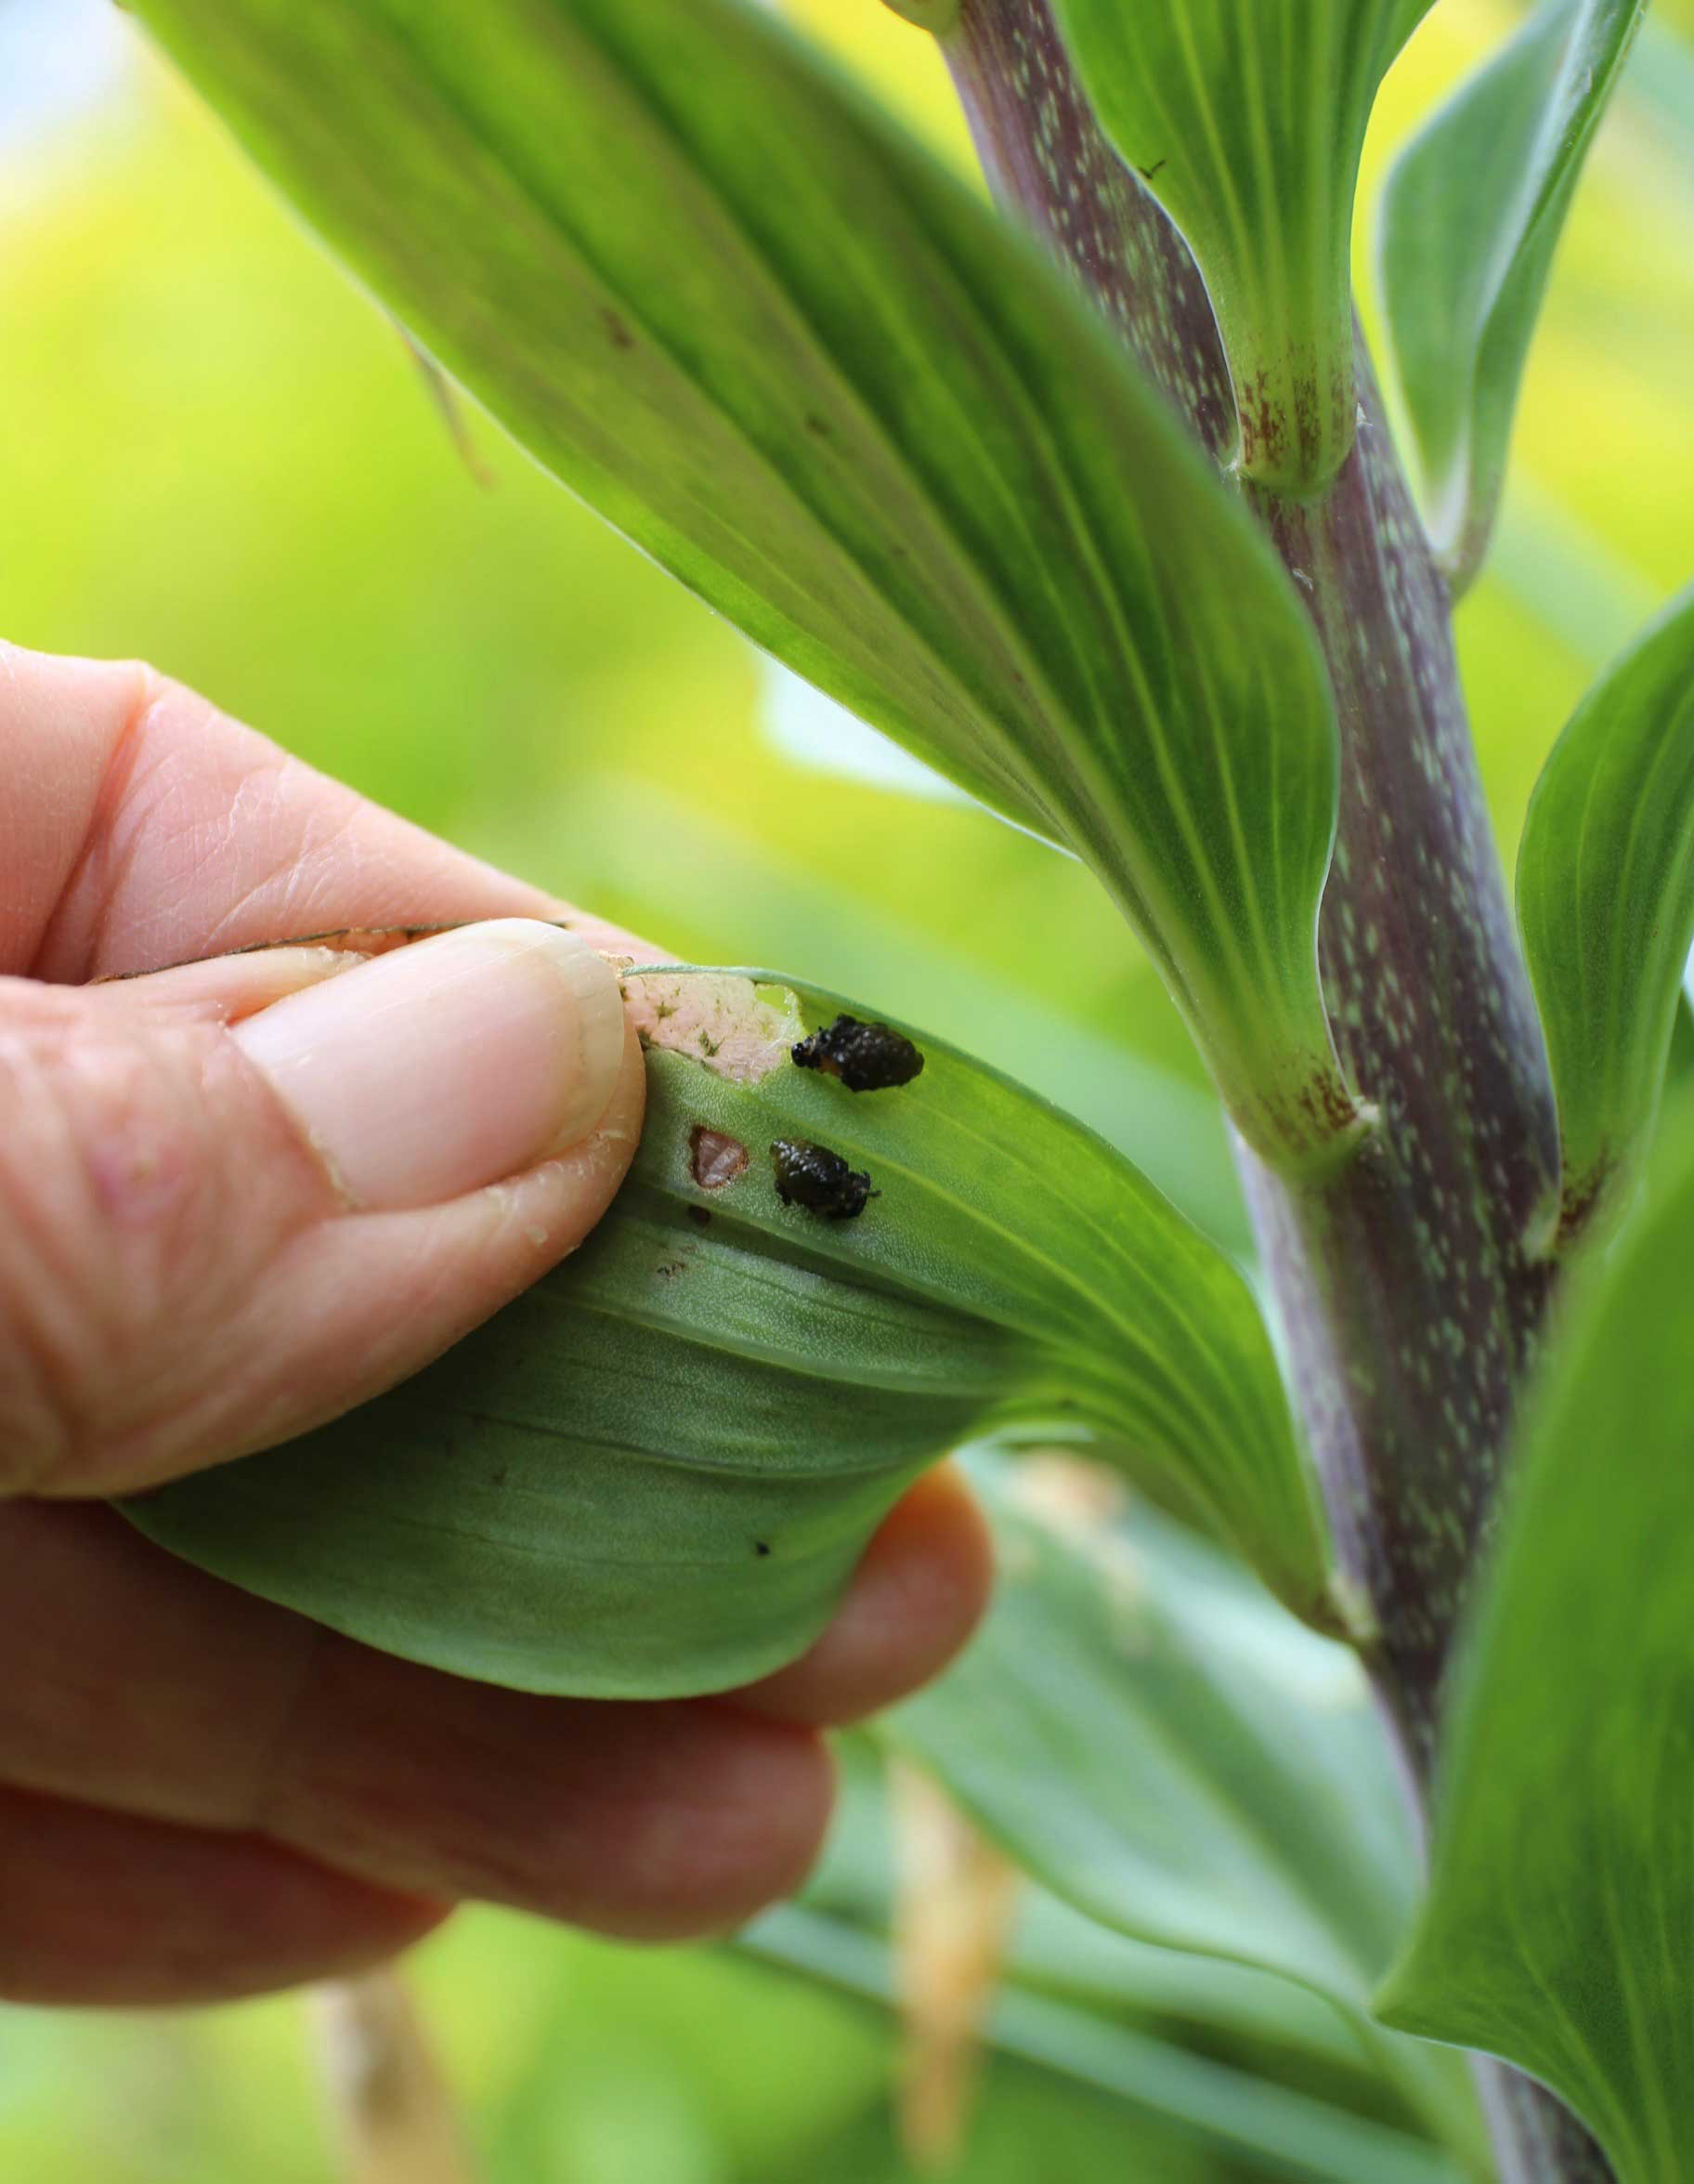 How to Control Lily Leaf Beetle - Longfield Gardens